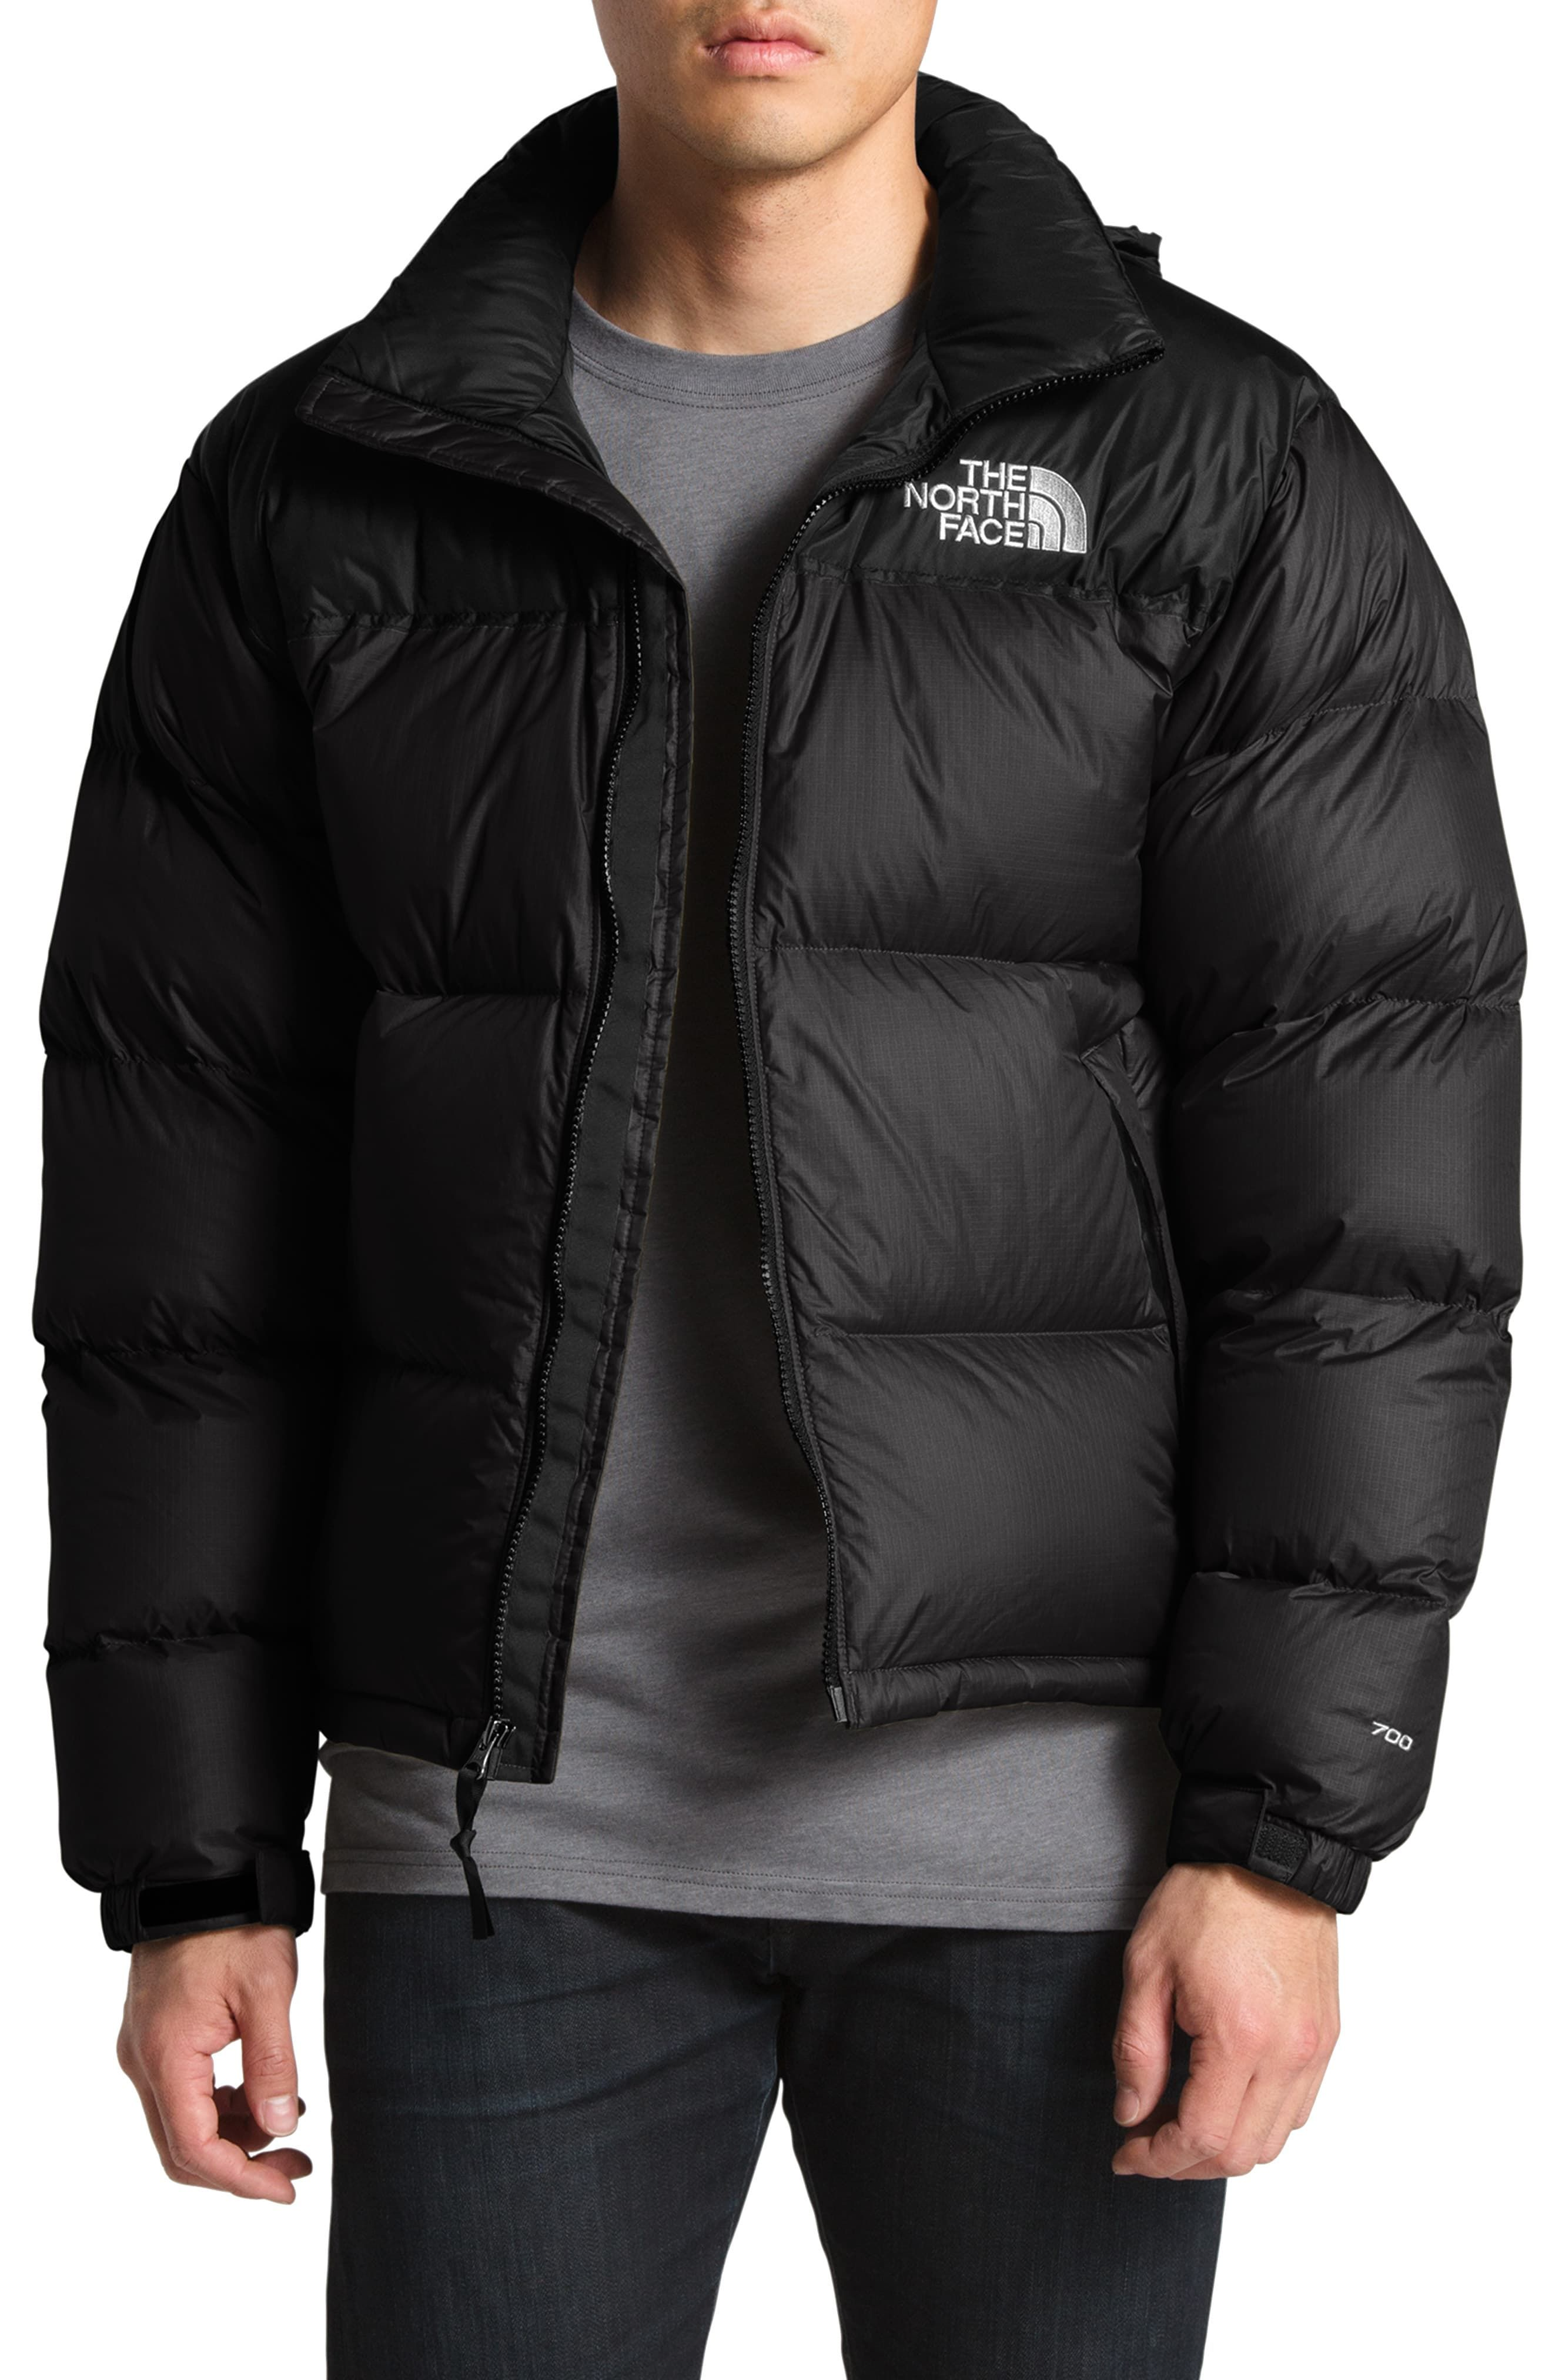 The North Face Nuptse 1996 Packable Quilted Down Jacket Nordstrom In 2021 North Face Jacket Mens North Face Puffer Jacket North Face Jacket [ 4048 x 2640 Pixel ]